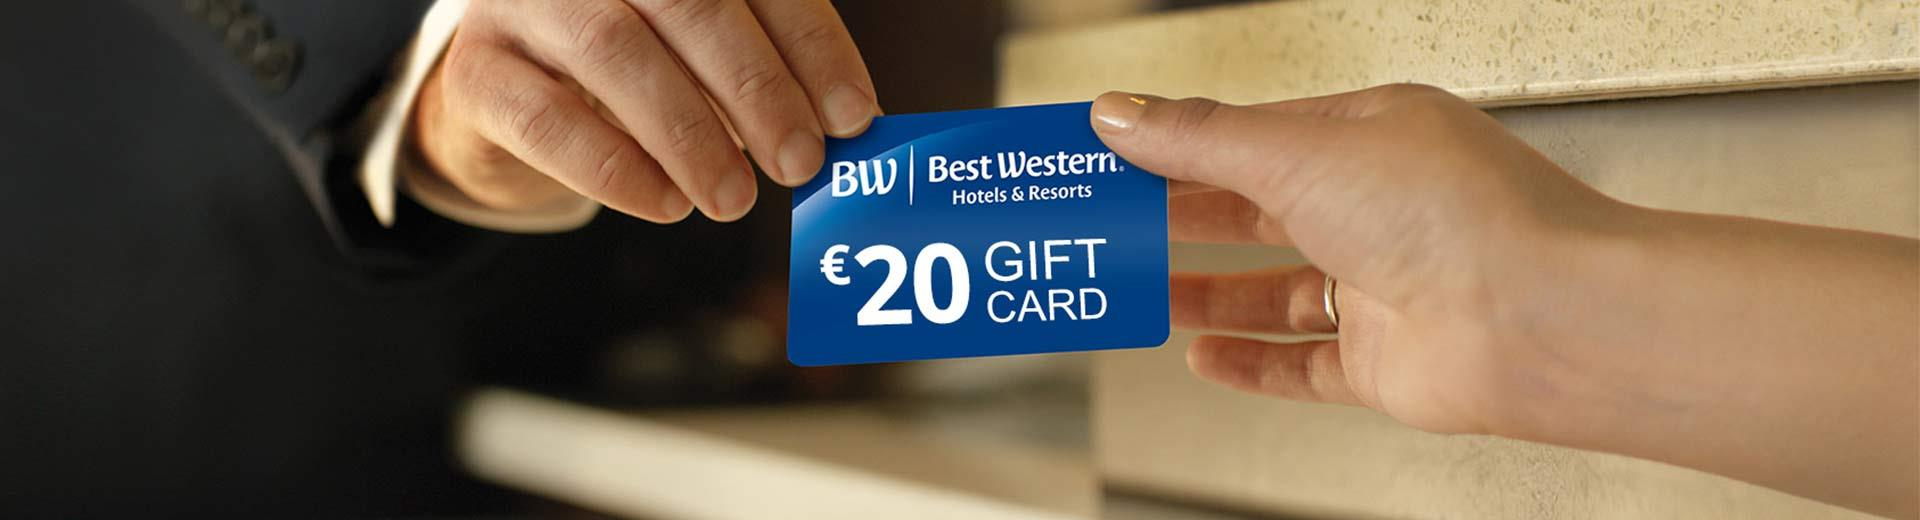 Global Summer Promotion - Best Western Hotel Mediterraneo Catania